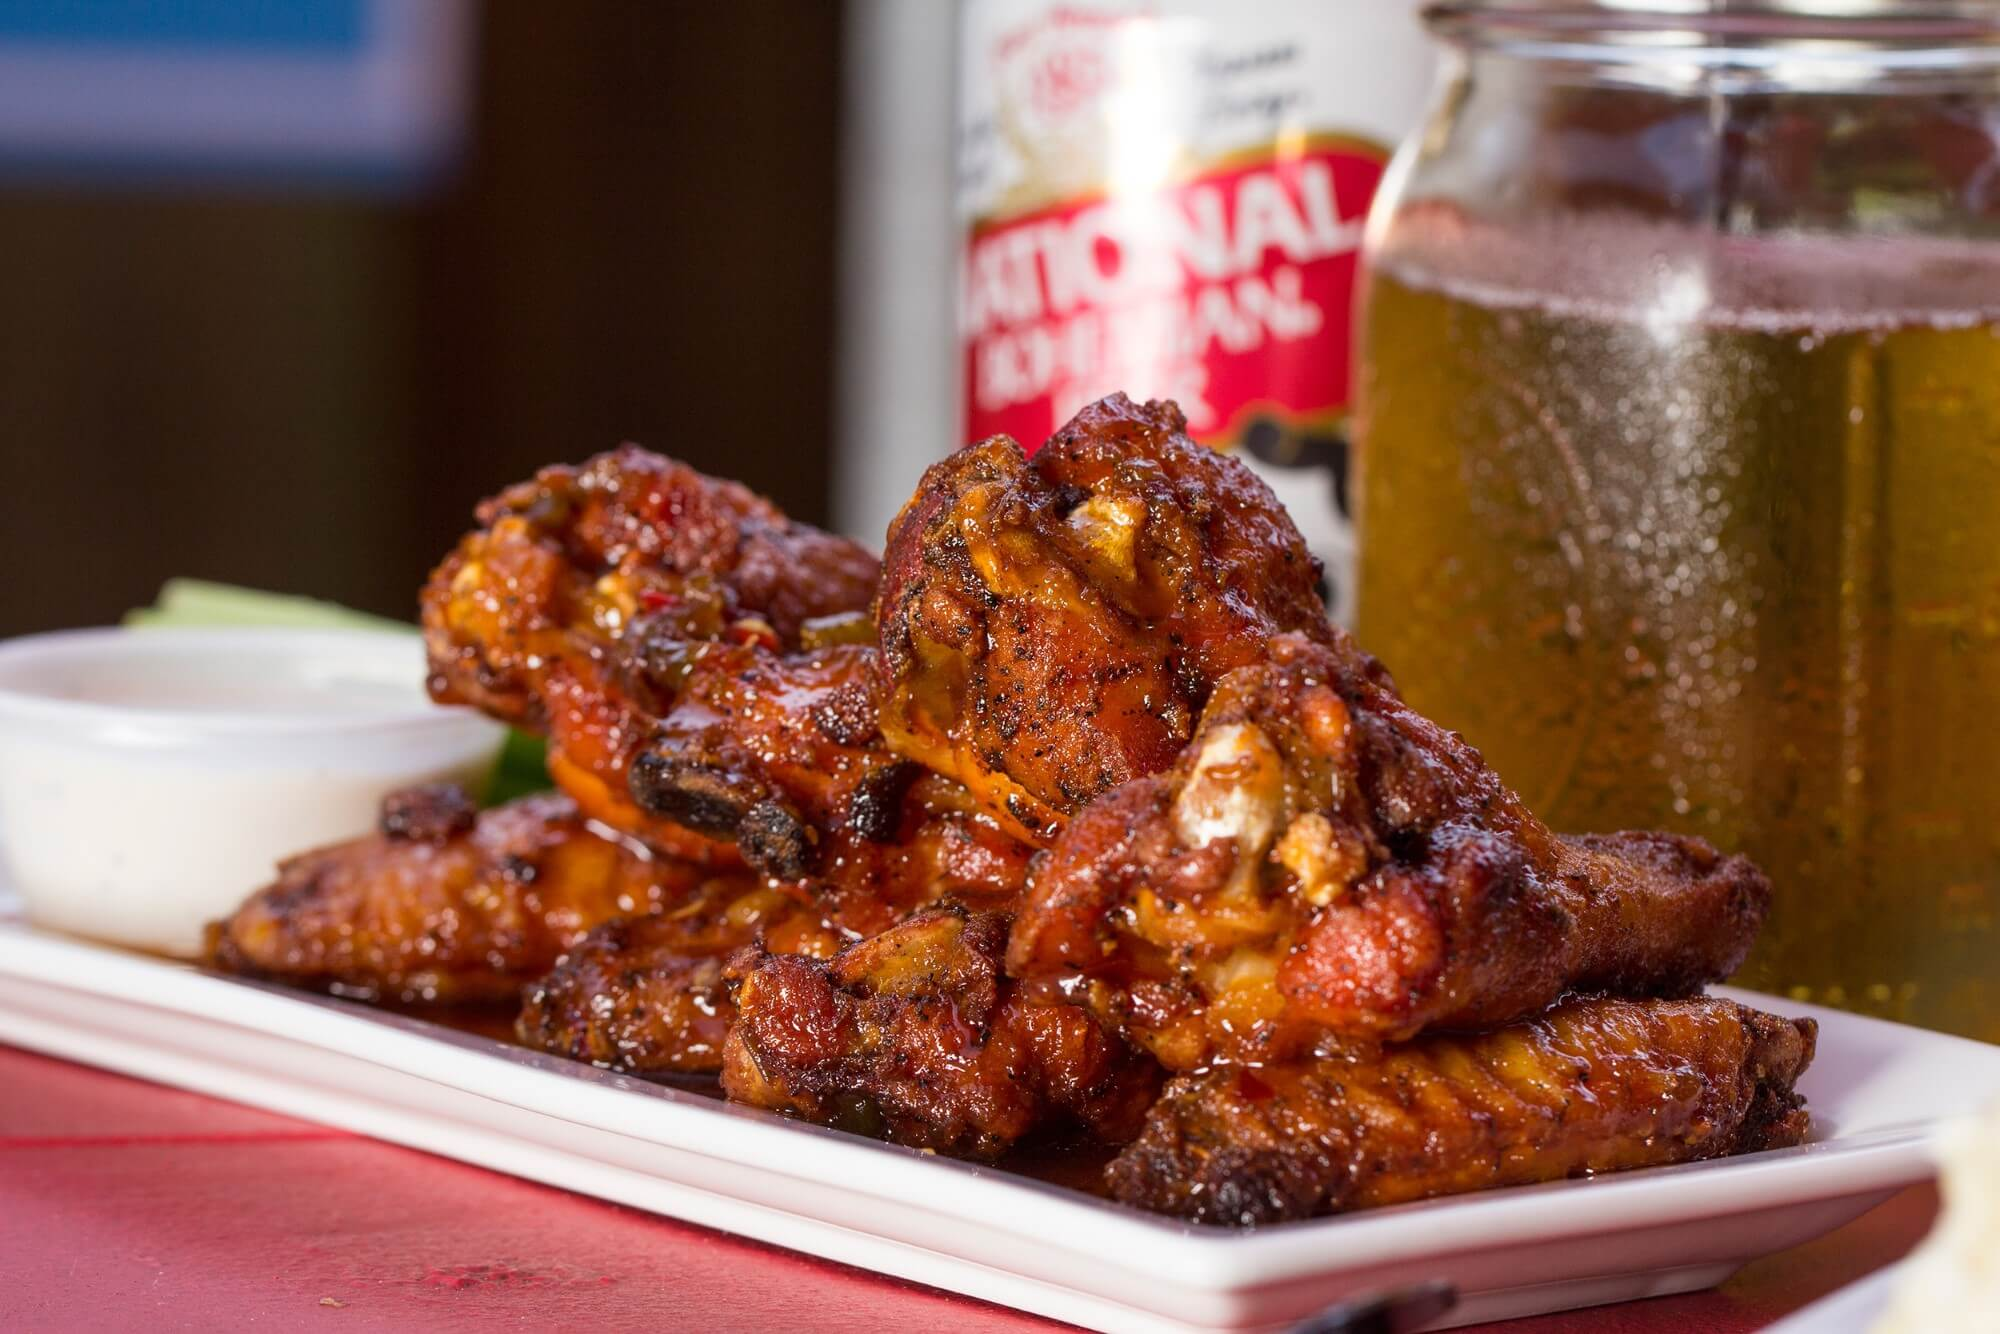 Best Wings in Annapolis - Chad's